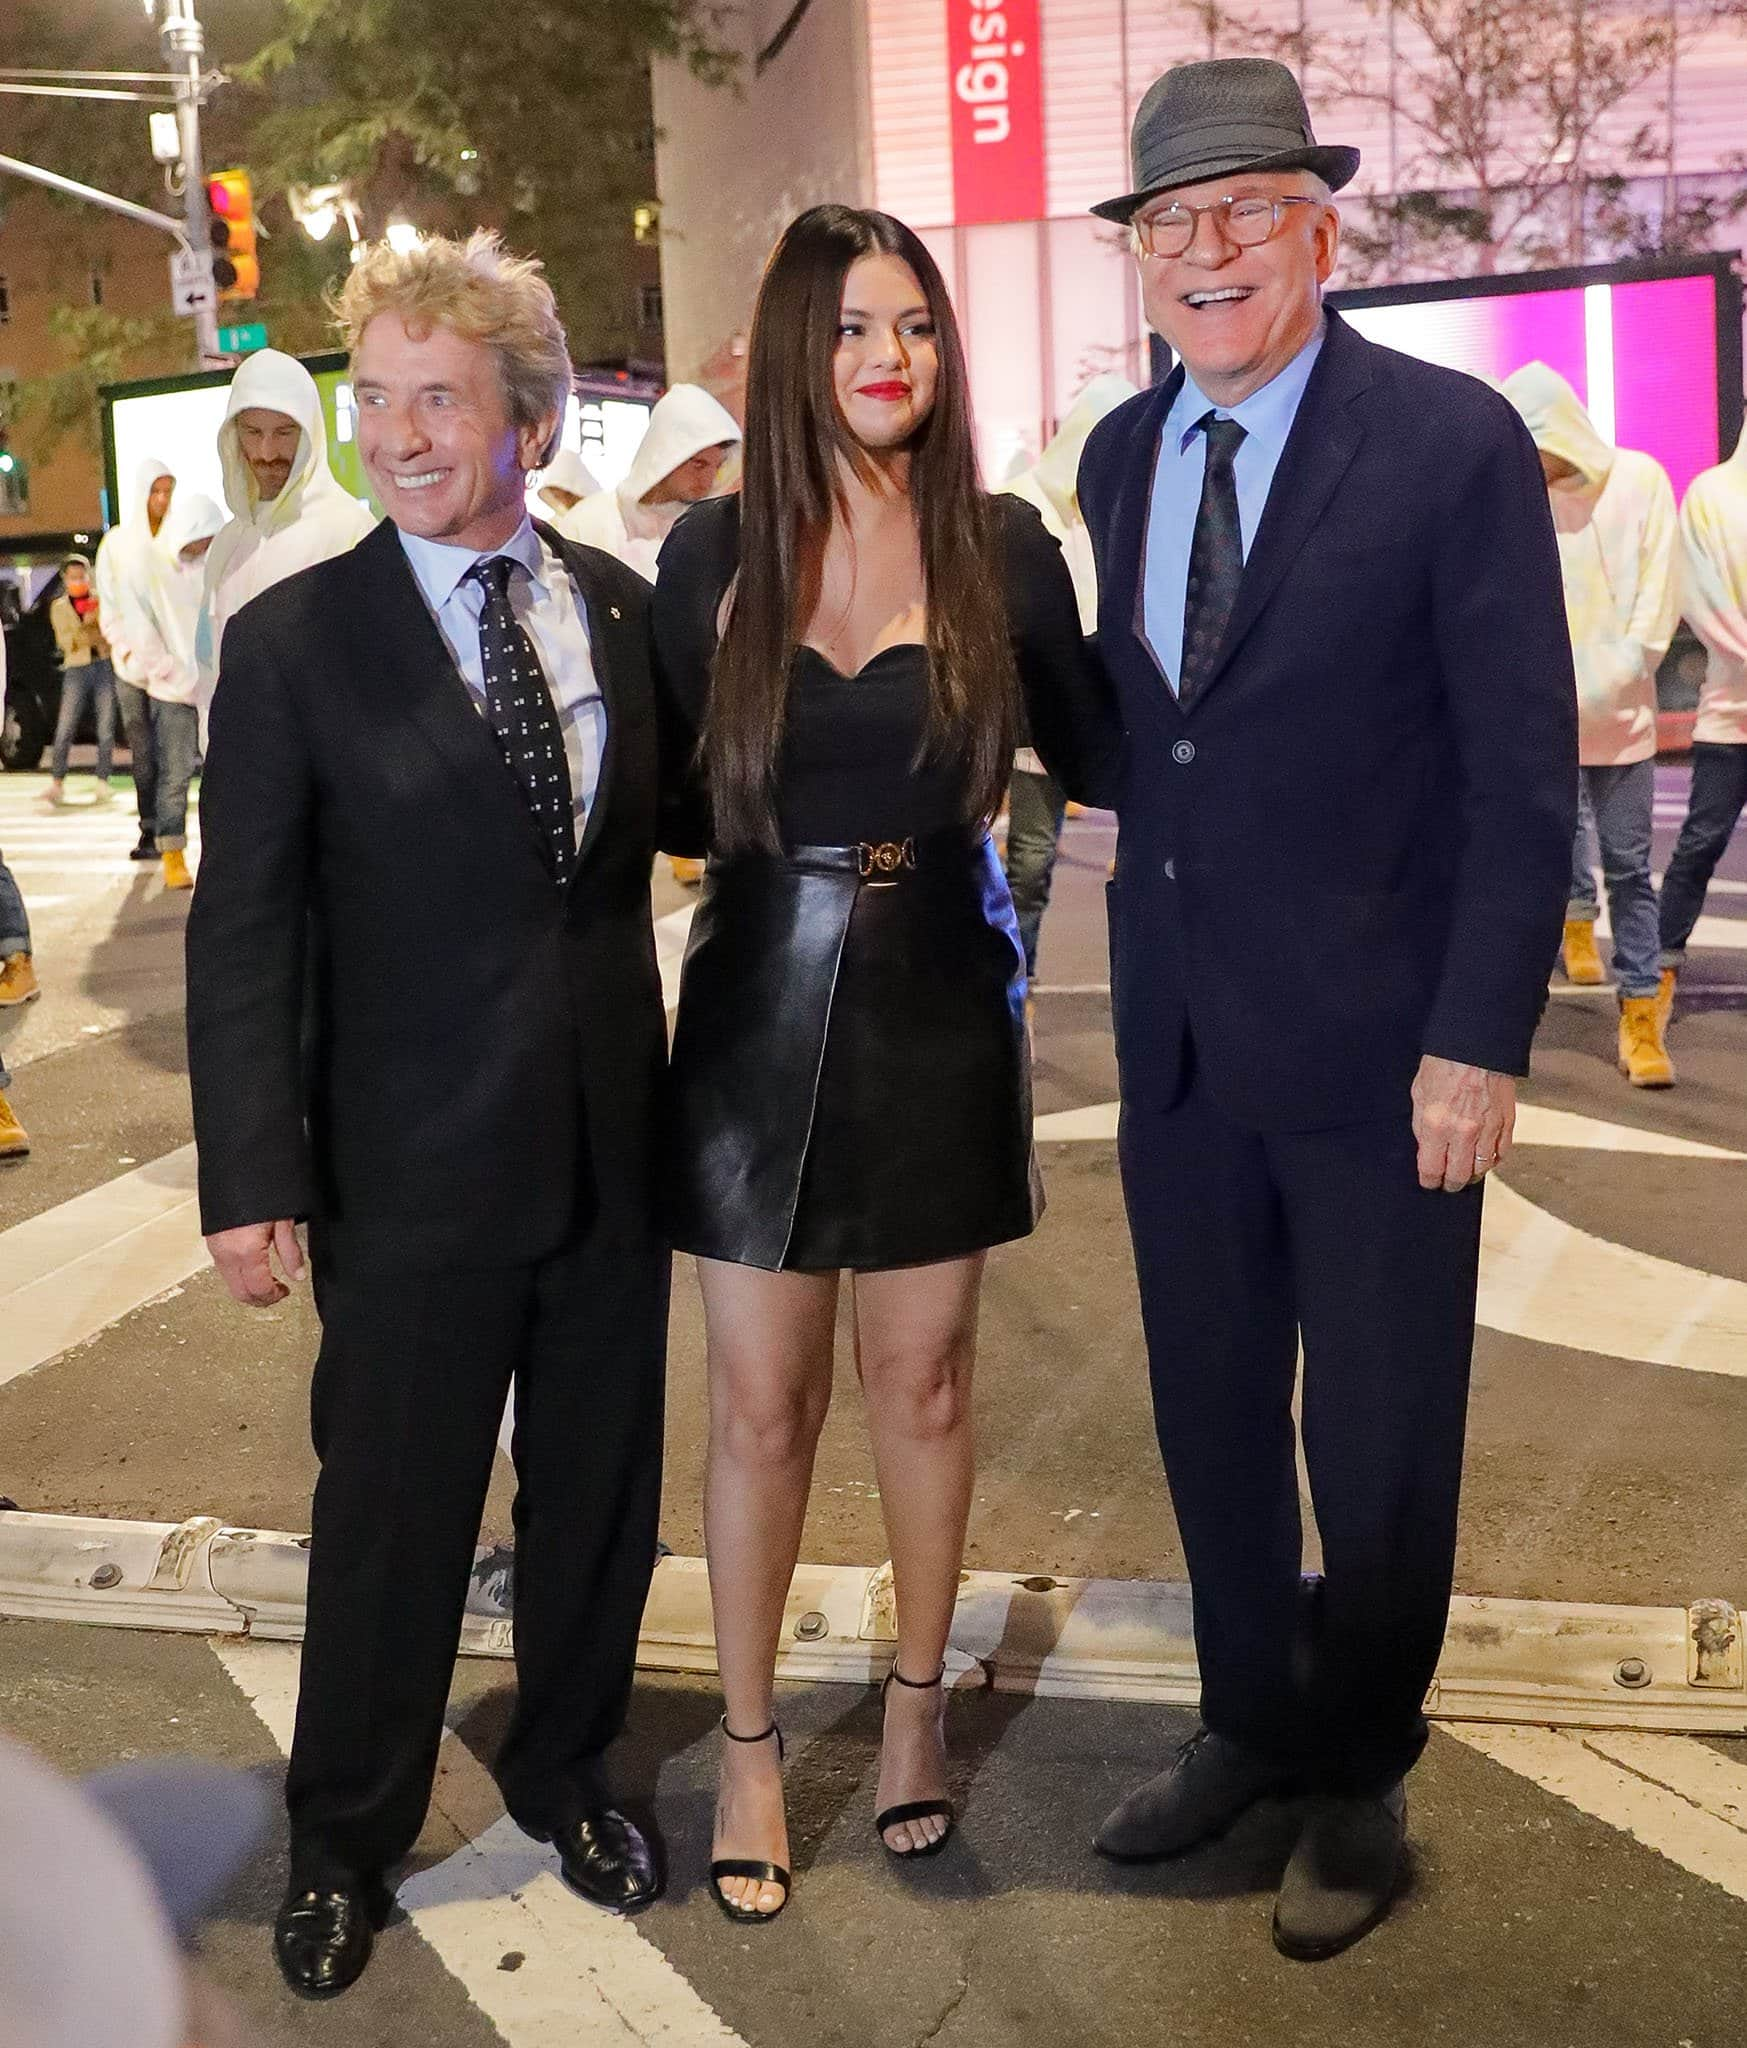 Martin Short, Selena Gomez, and Steve Martin at the Ed Sullivan Theater for an appearance on The Late Show with Stephen Colbert on September 7, 2021